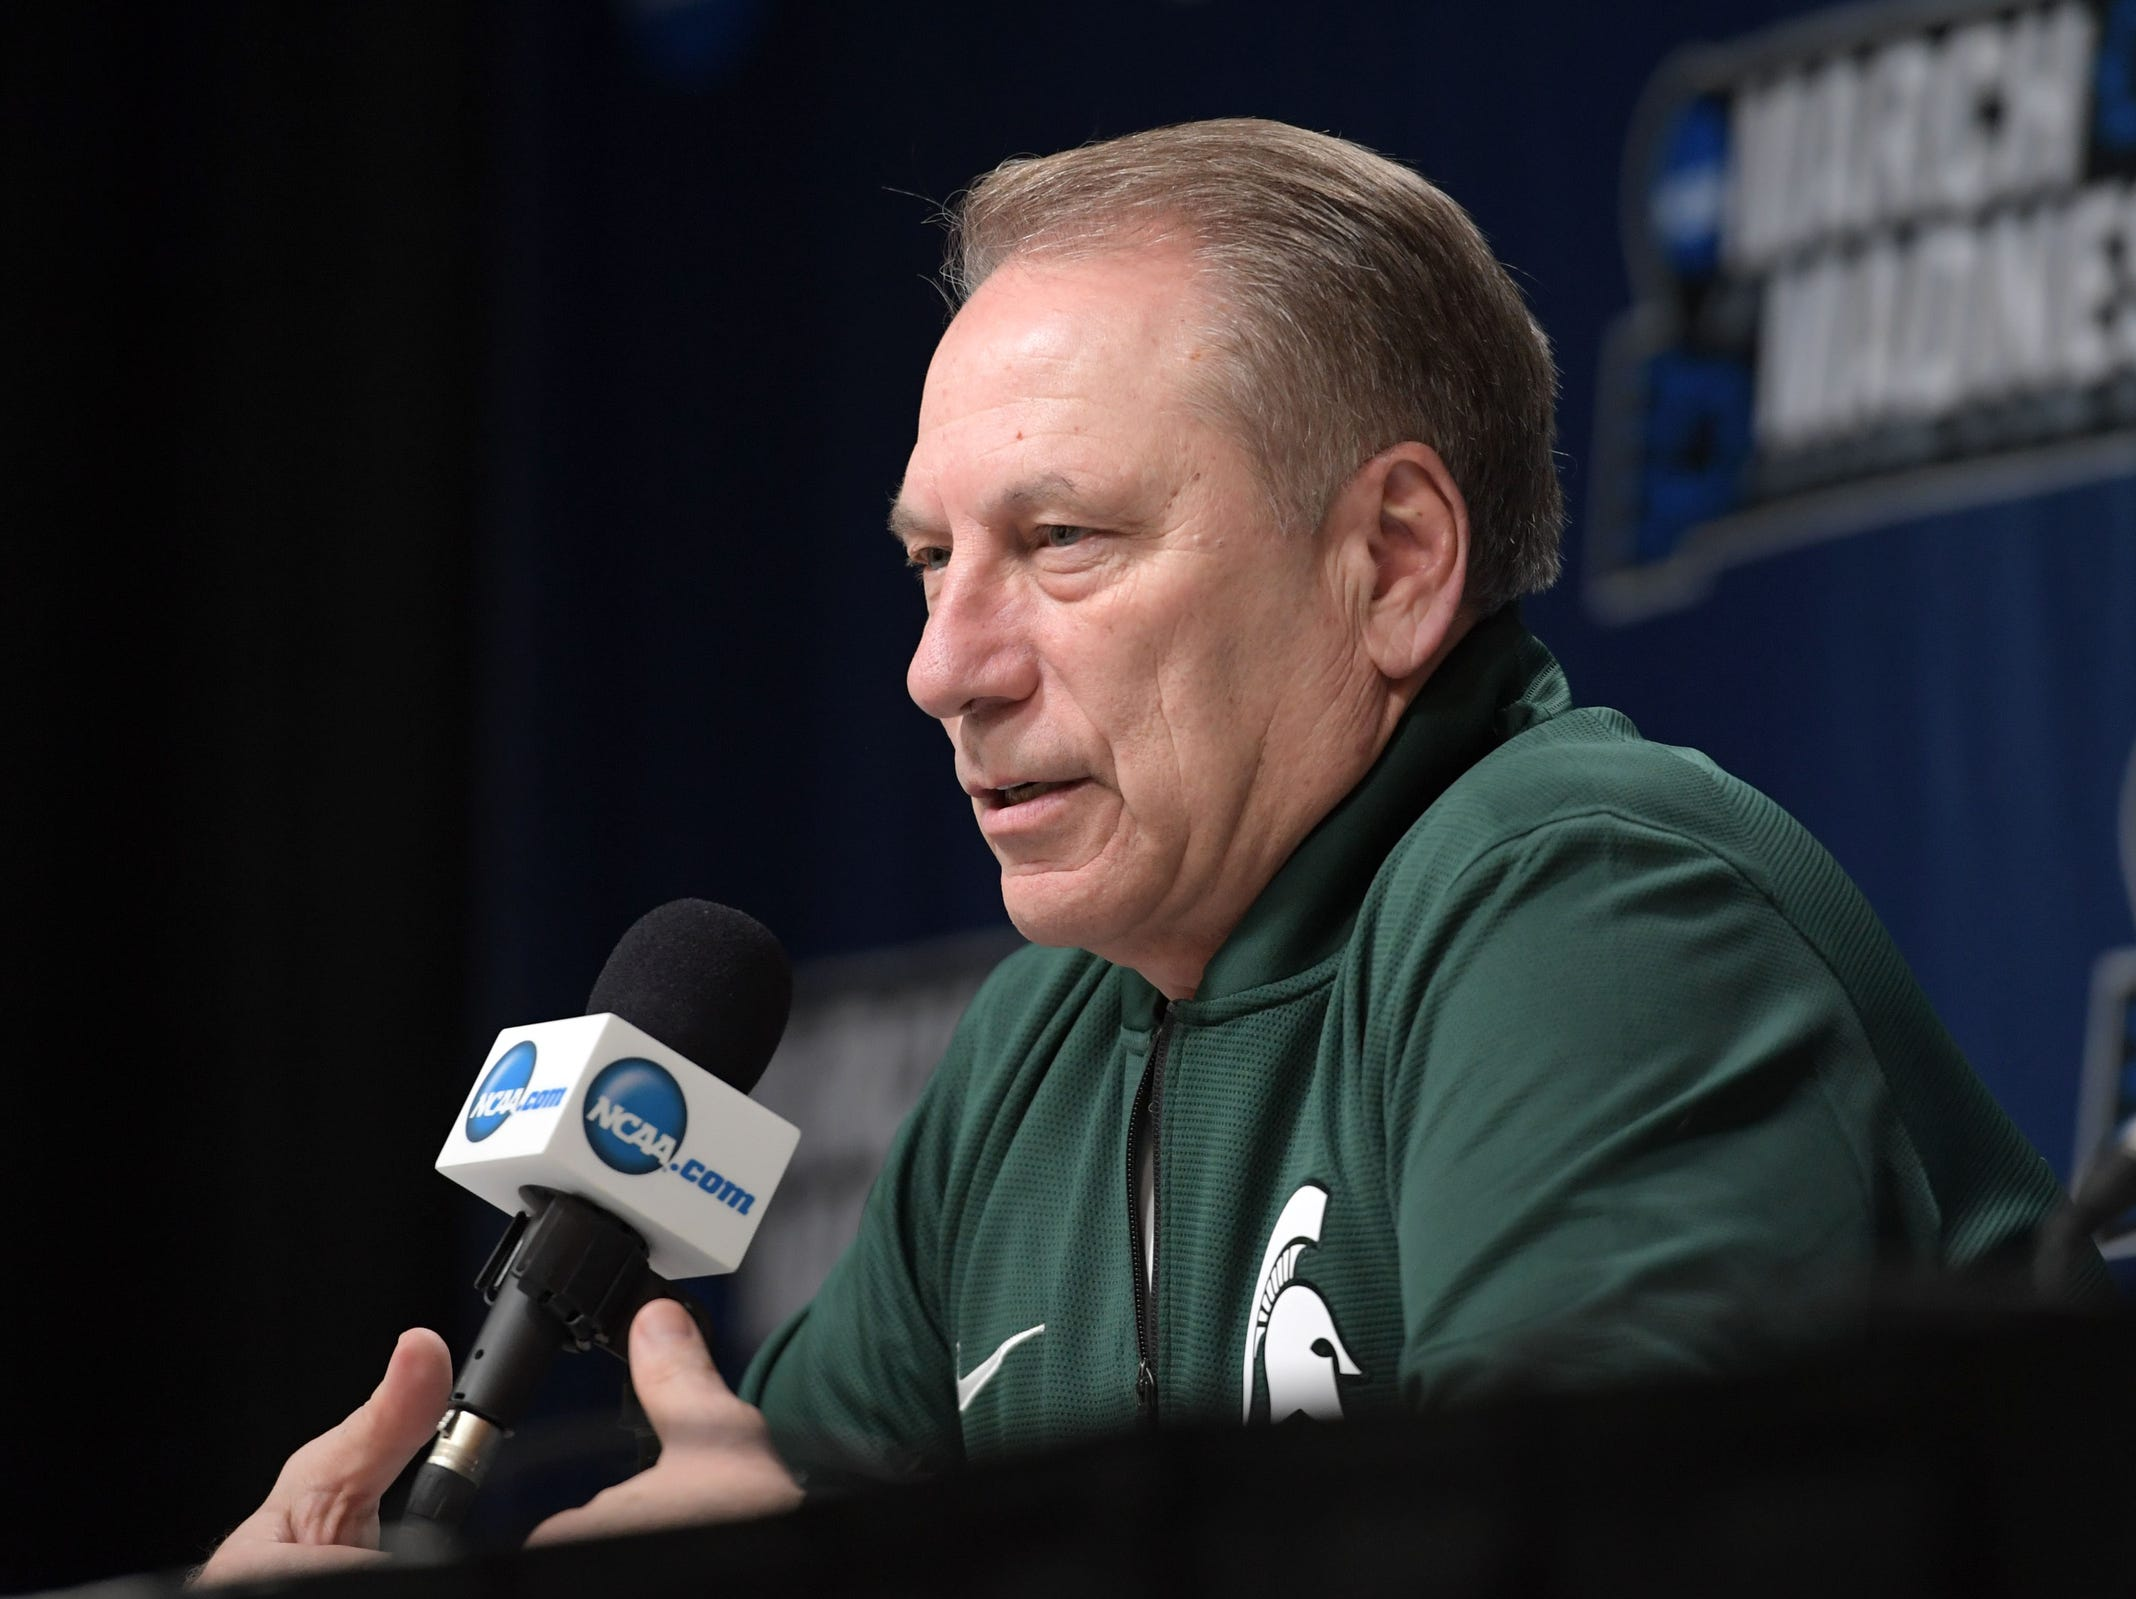 Mar 20, 2019; Des Moines, IA, USA; Michigan State Spartans head coach Tom Izzo in a press conference during practice before the first round of the 2019 NCAA Tournament at Wells Fargo Arena. Mandatory Credit: Steven Branscombe-USA TODAY Sports